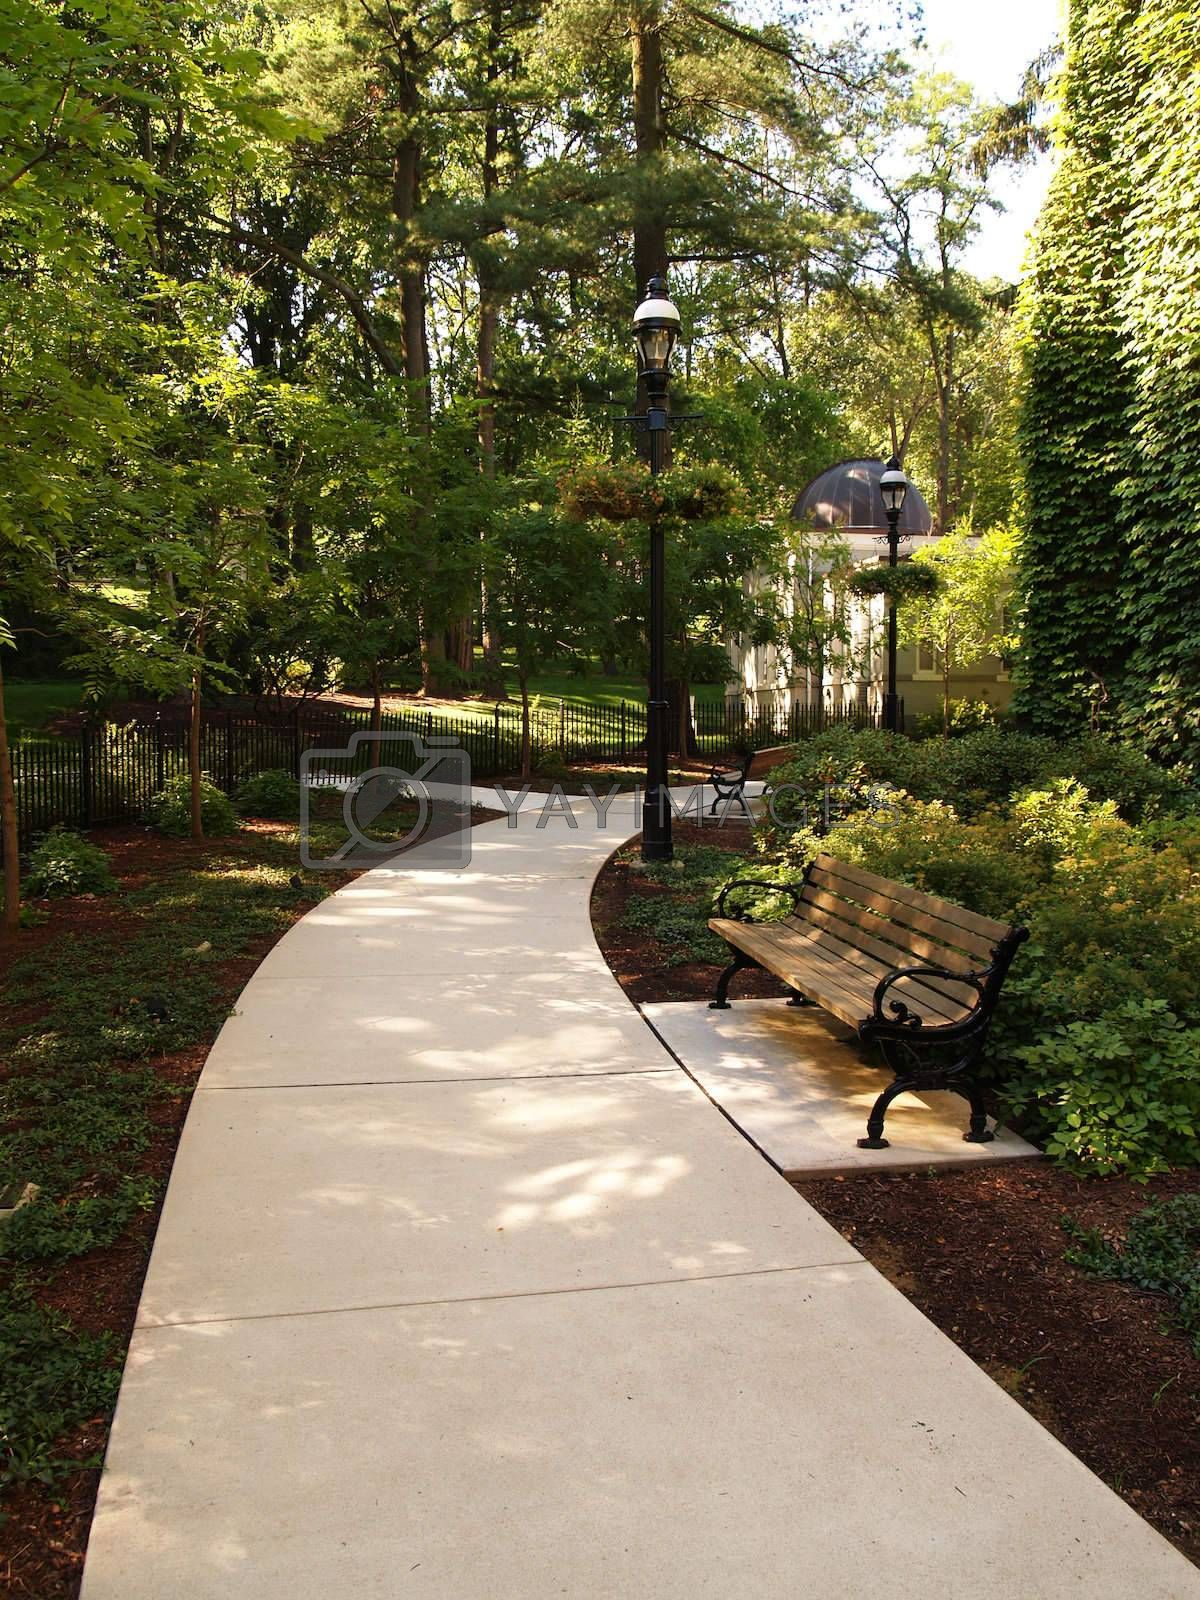 shady walkway and a park bench with many trees